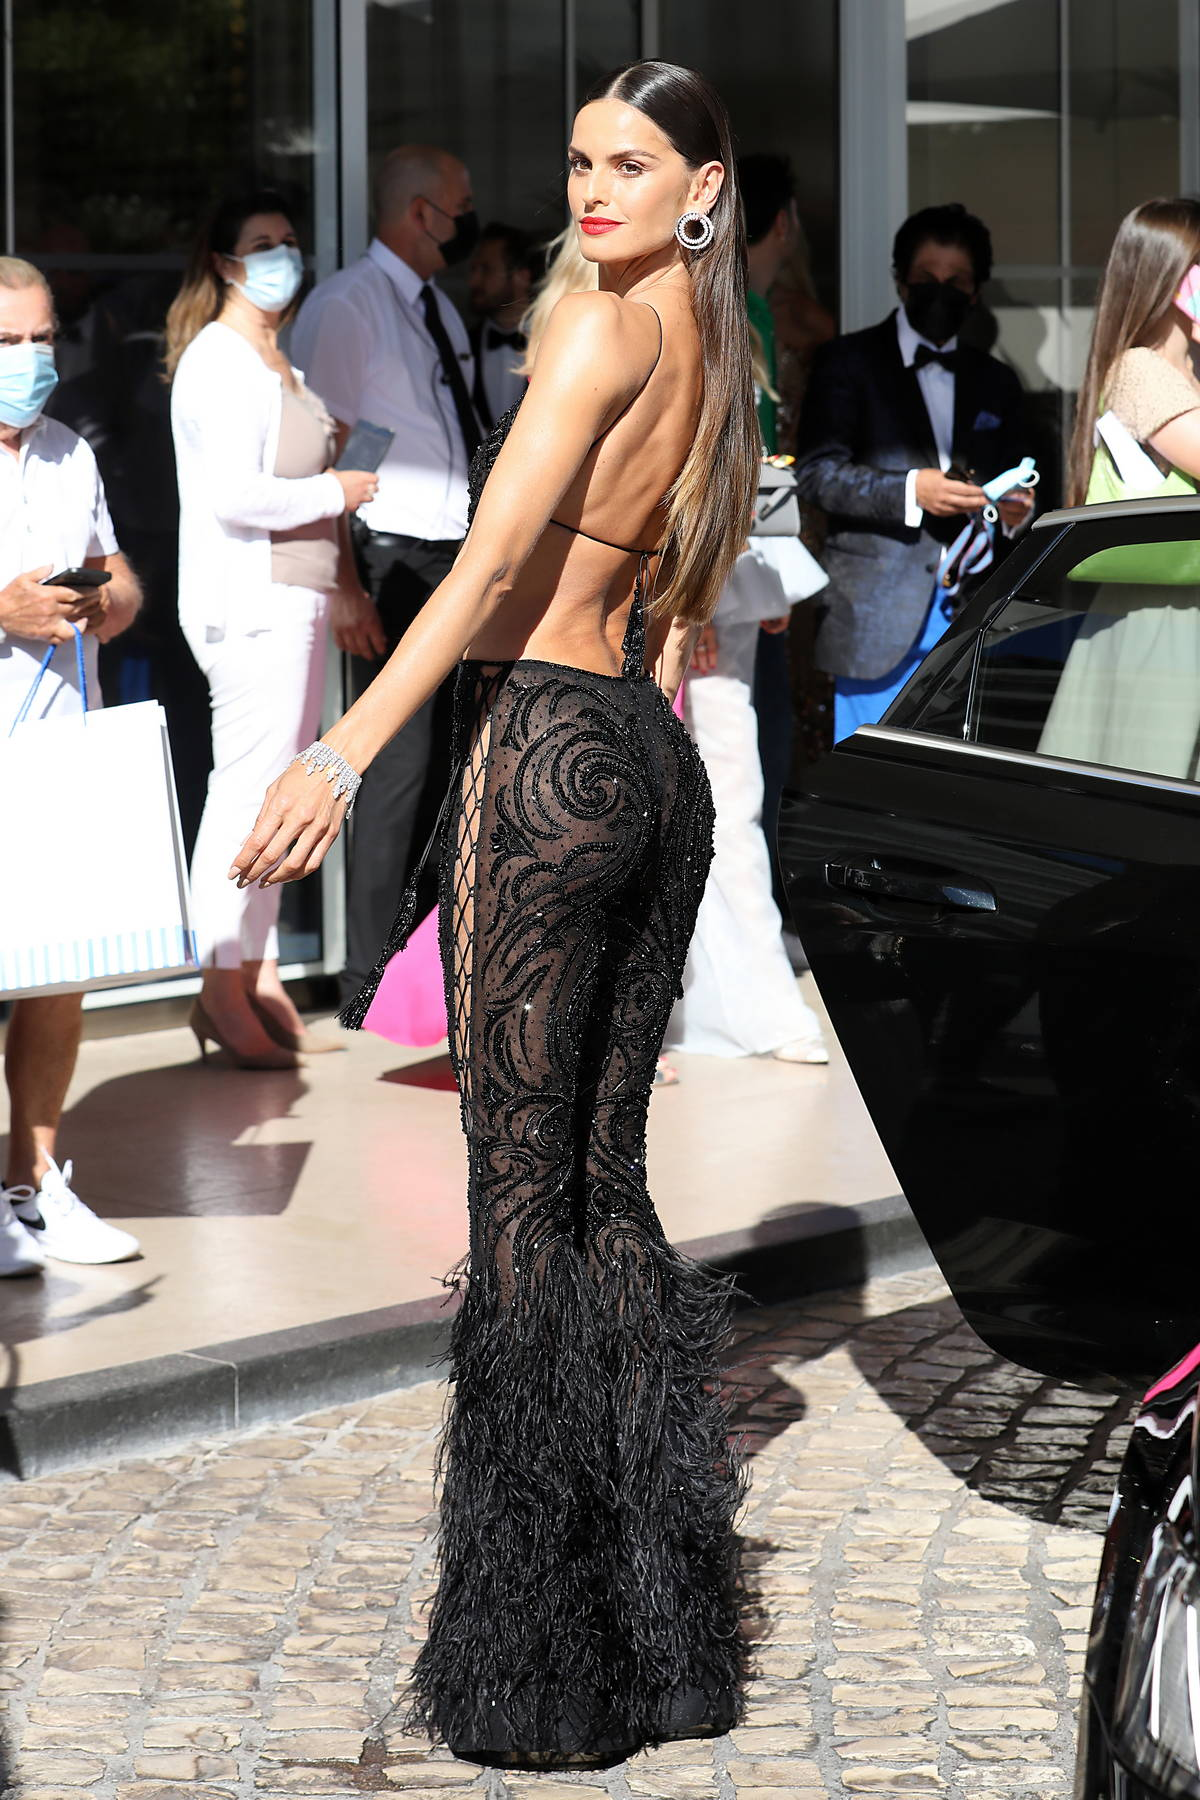 Izabel Goulart stuns in a black lace outfit as she leaves the Martinez Hotel during the 74th Cannes Film Festival in Cannes, France